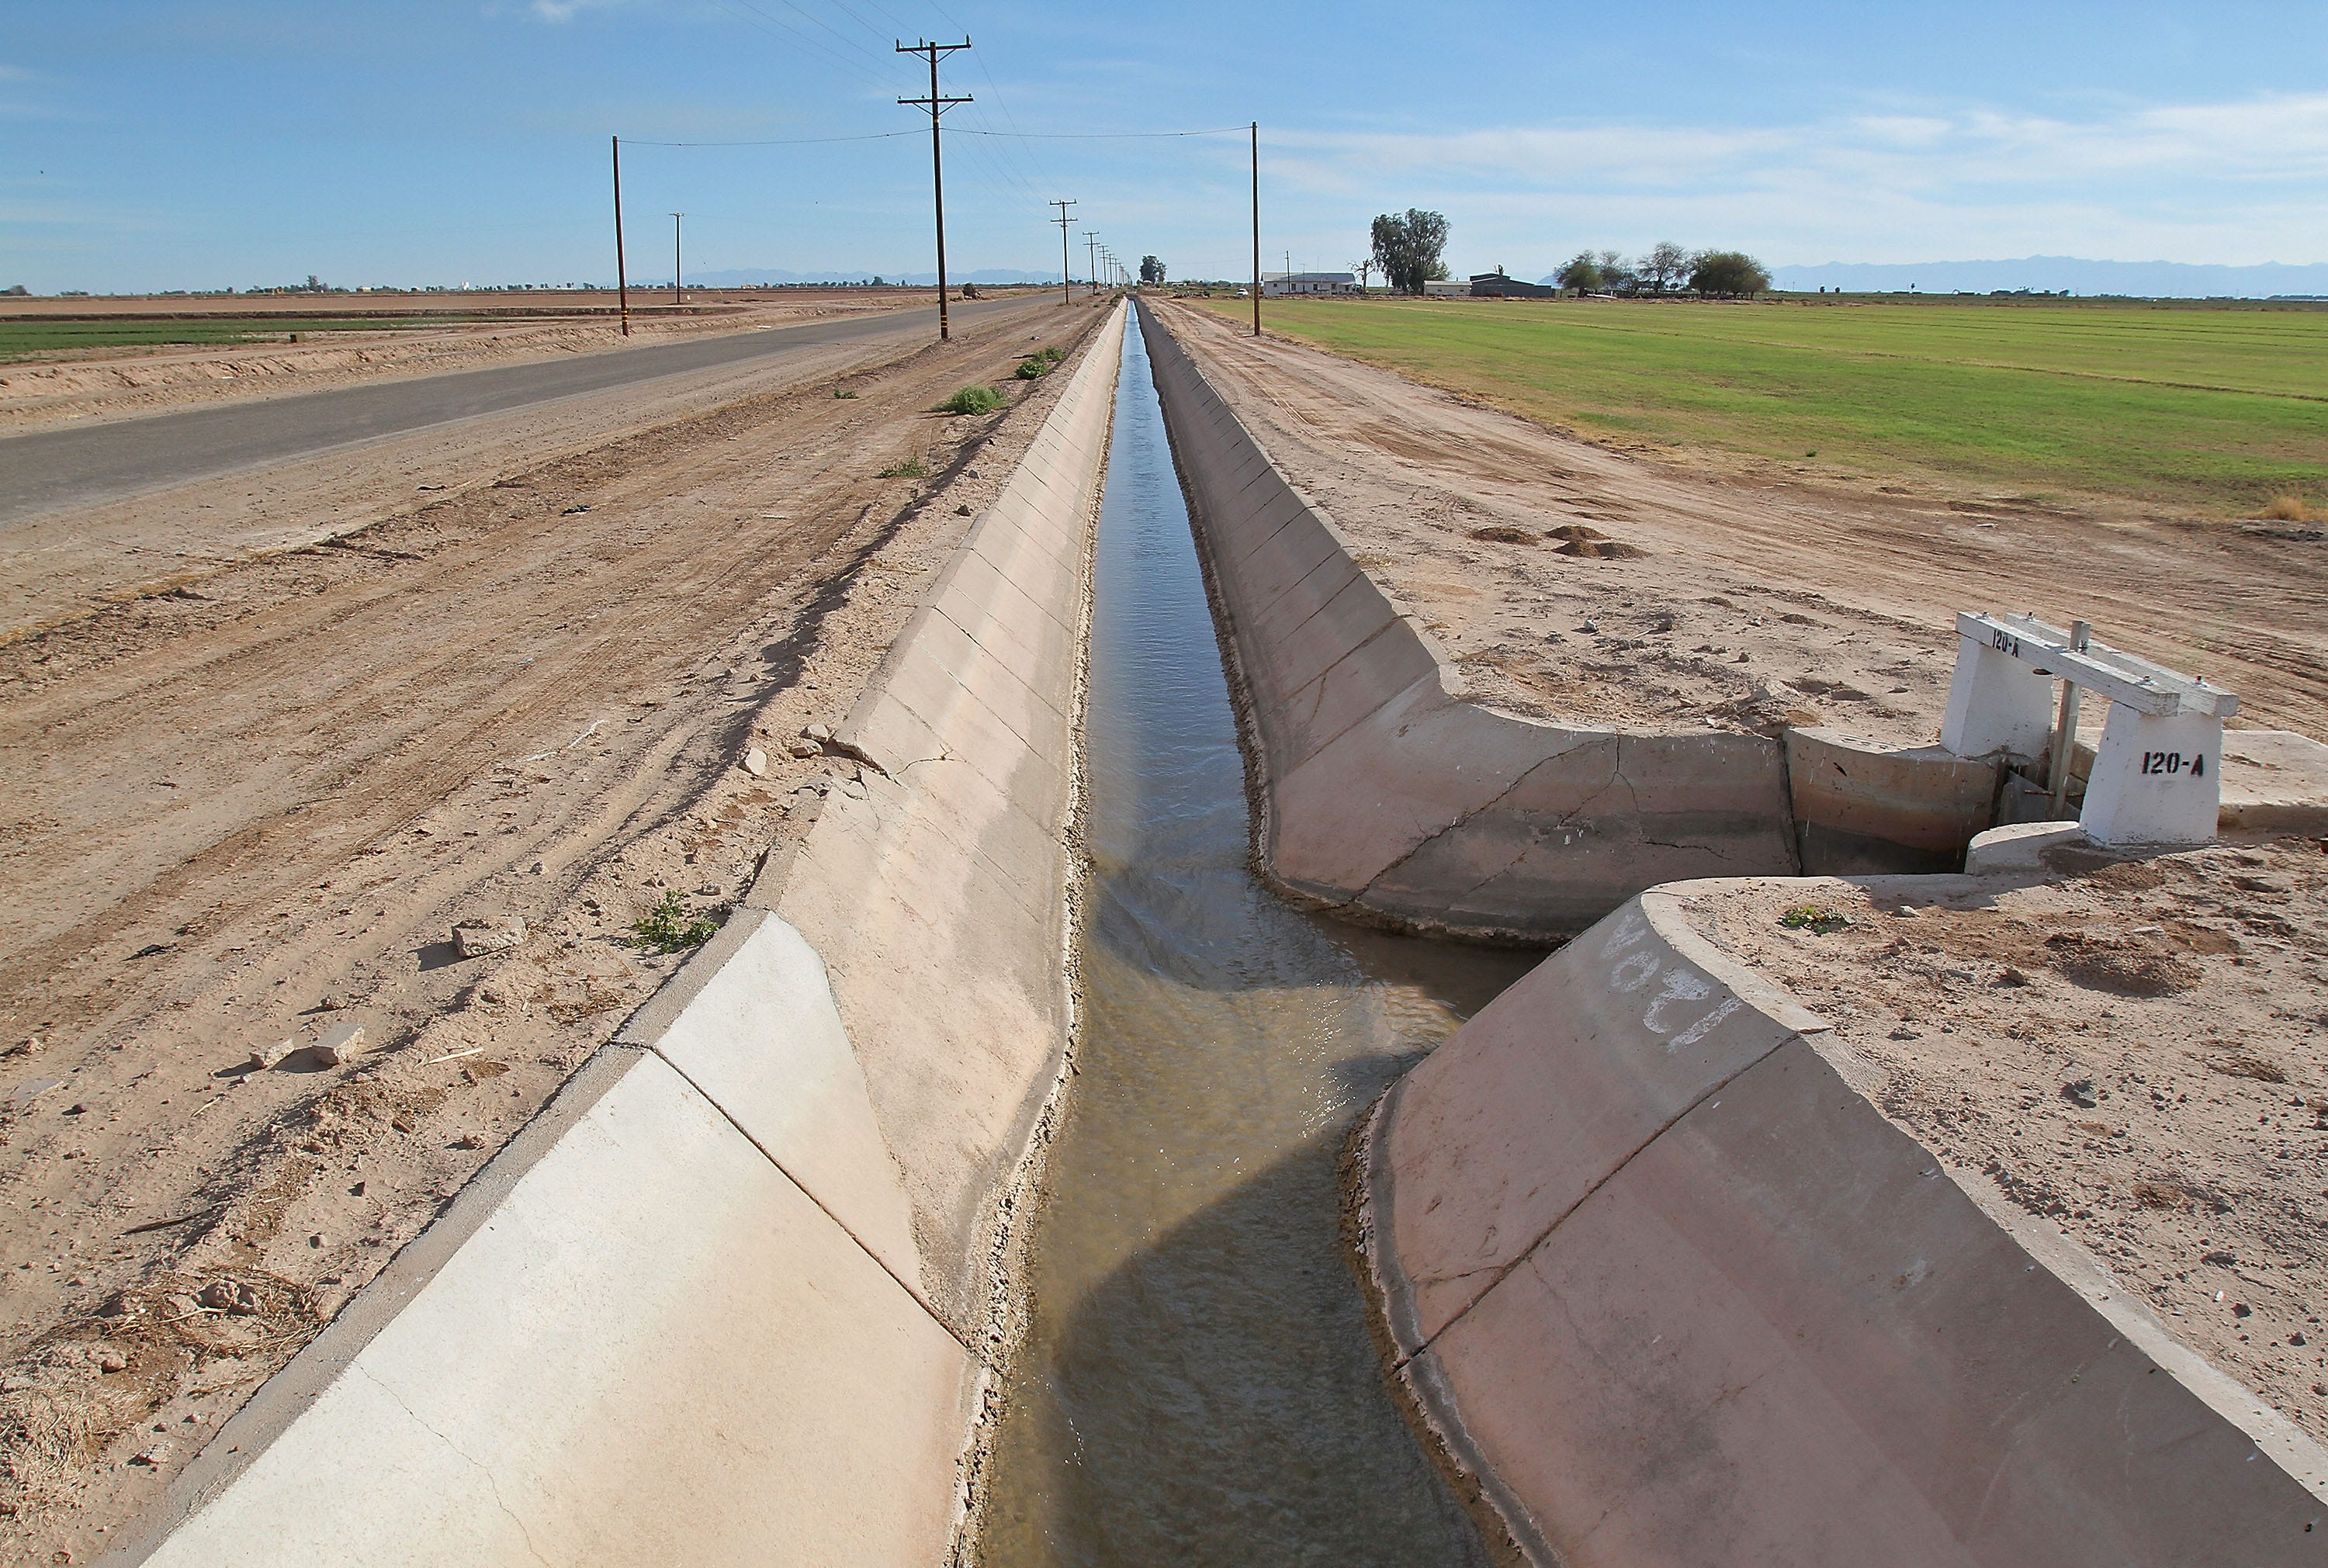 Water from the Colorado River flows to a farm near Brawley in California's Imperial Valley.